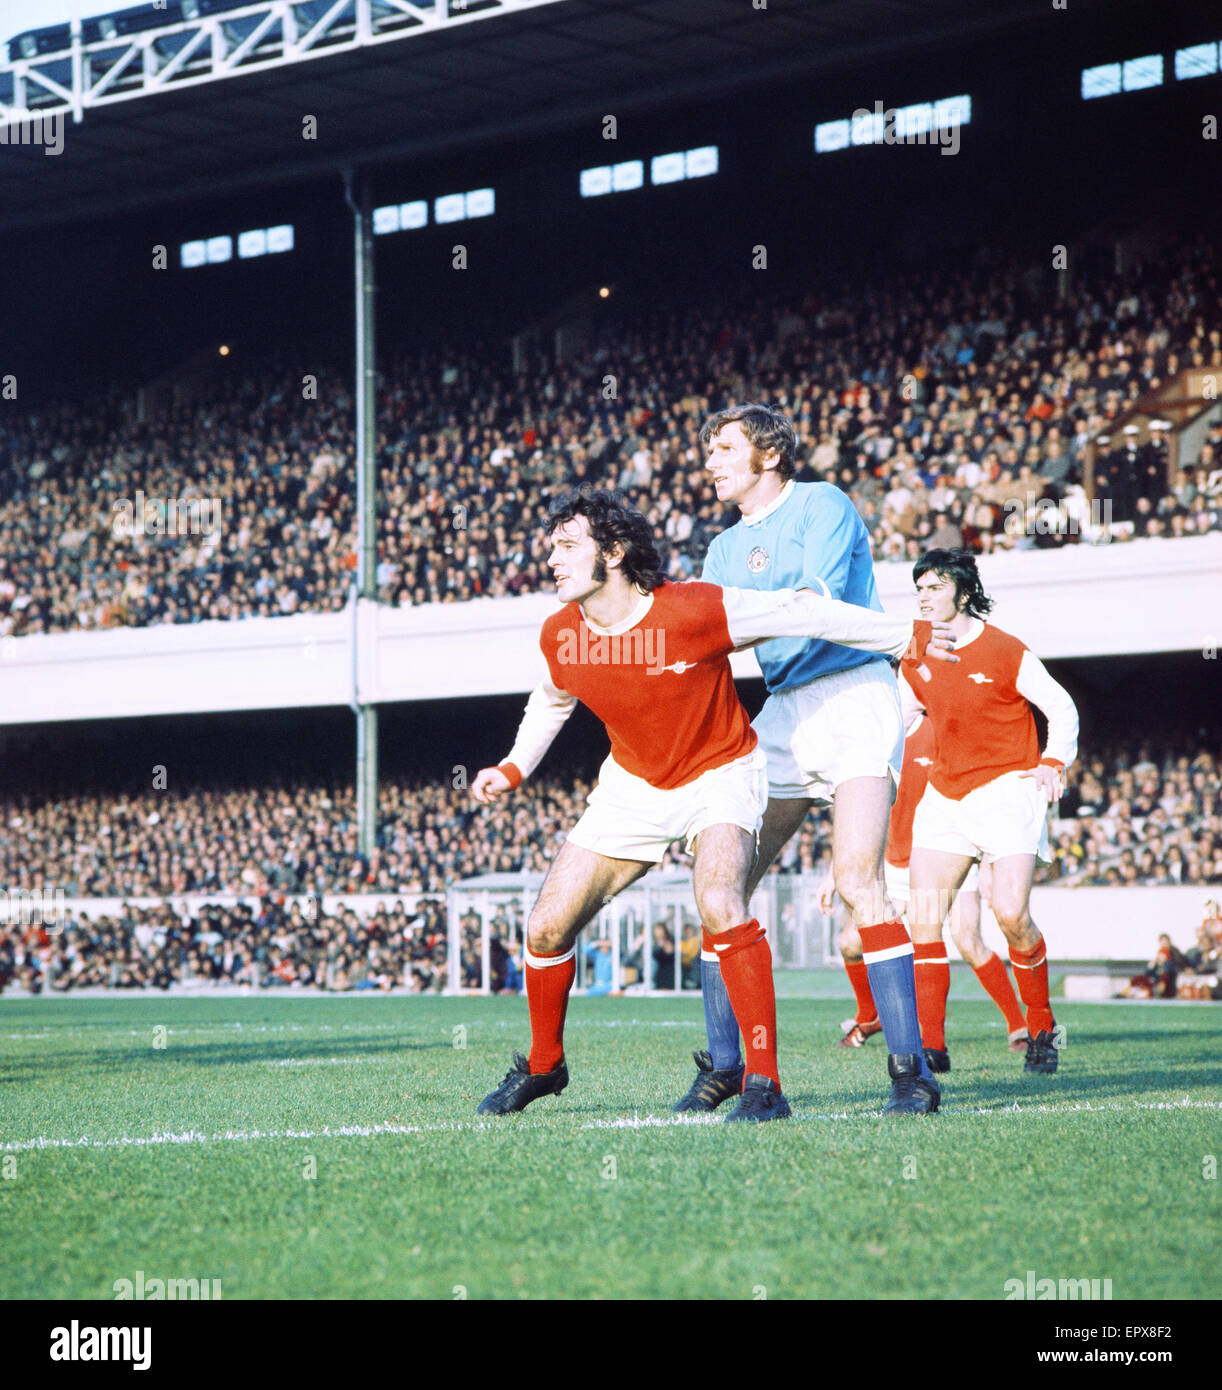 English League Division One match at Highbury. Arsenal 0 v Manchester City 0. Arsenal's Peter Storey challenged - Stock Image